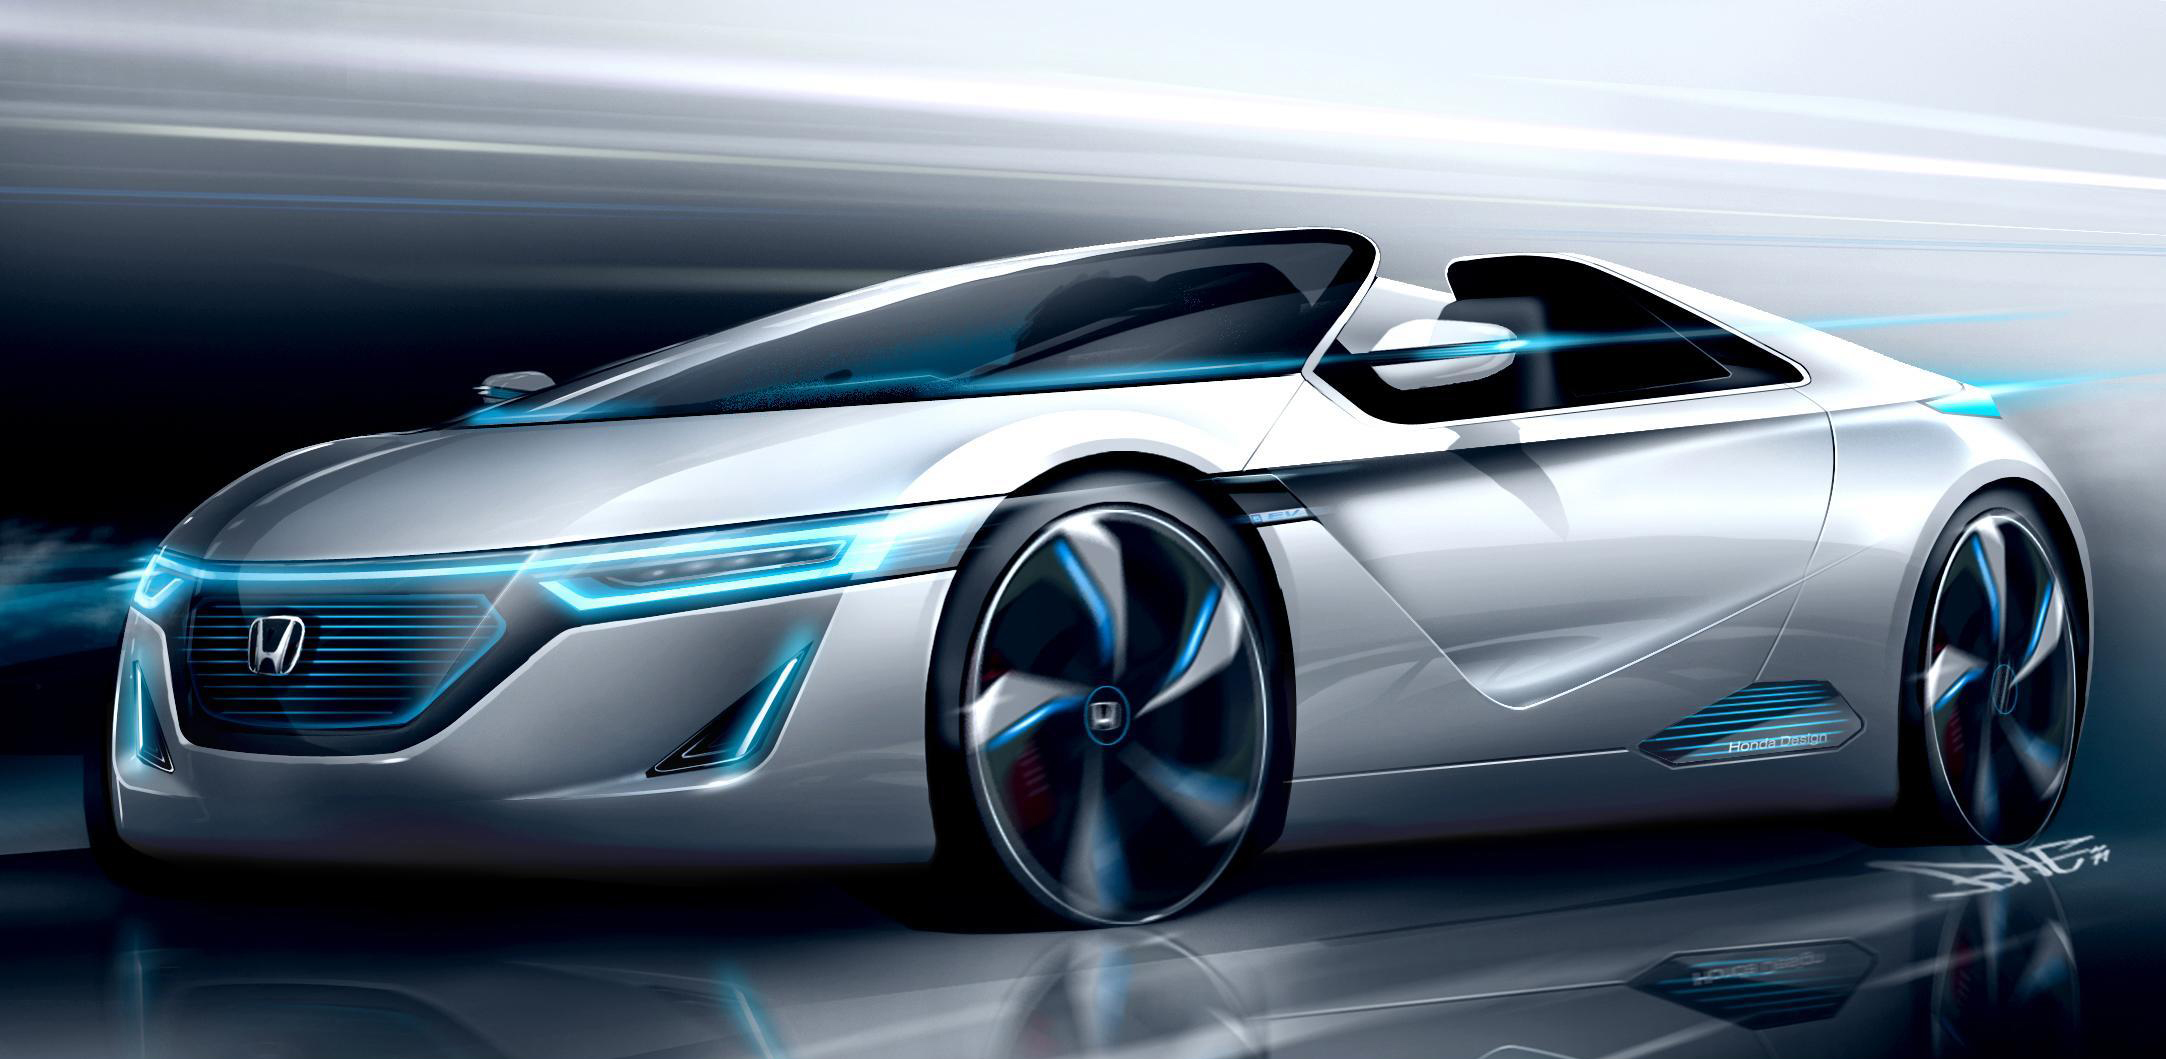 Town And Country Honda >> 2012 Honda EV-STER Concept News and Information, Research ...